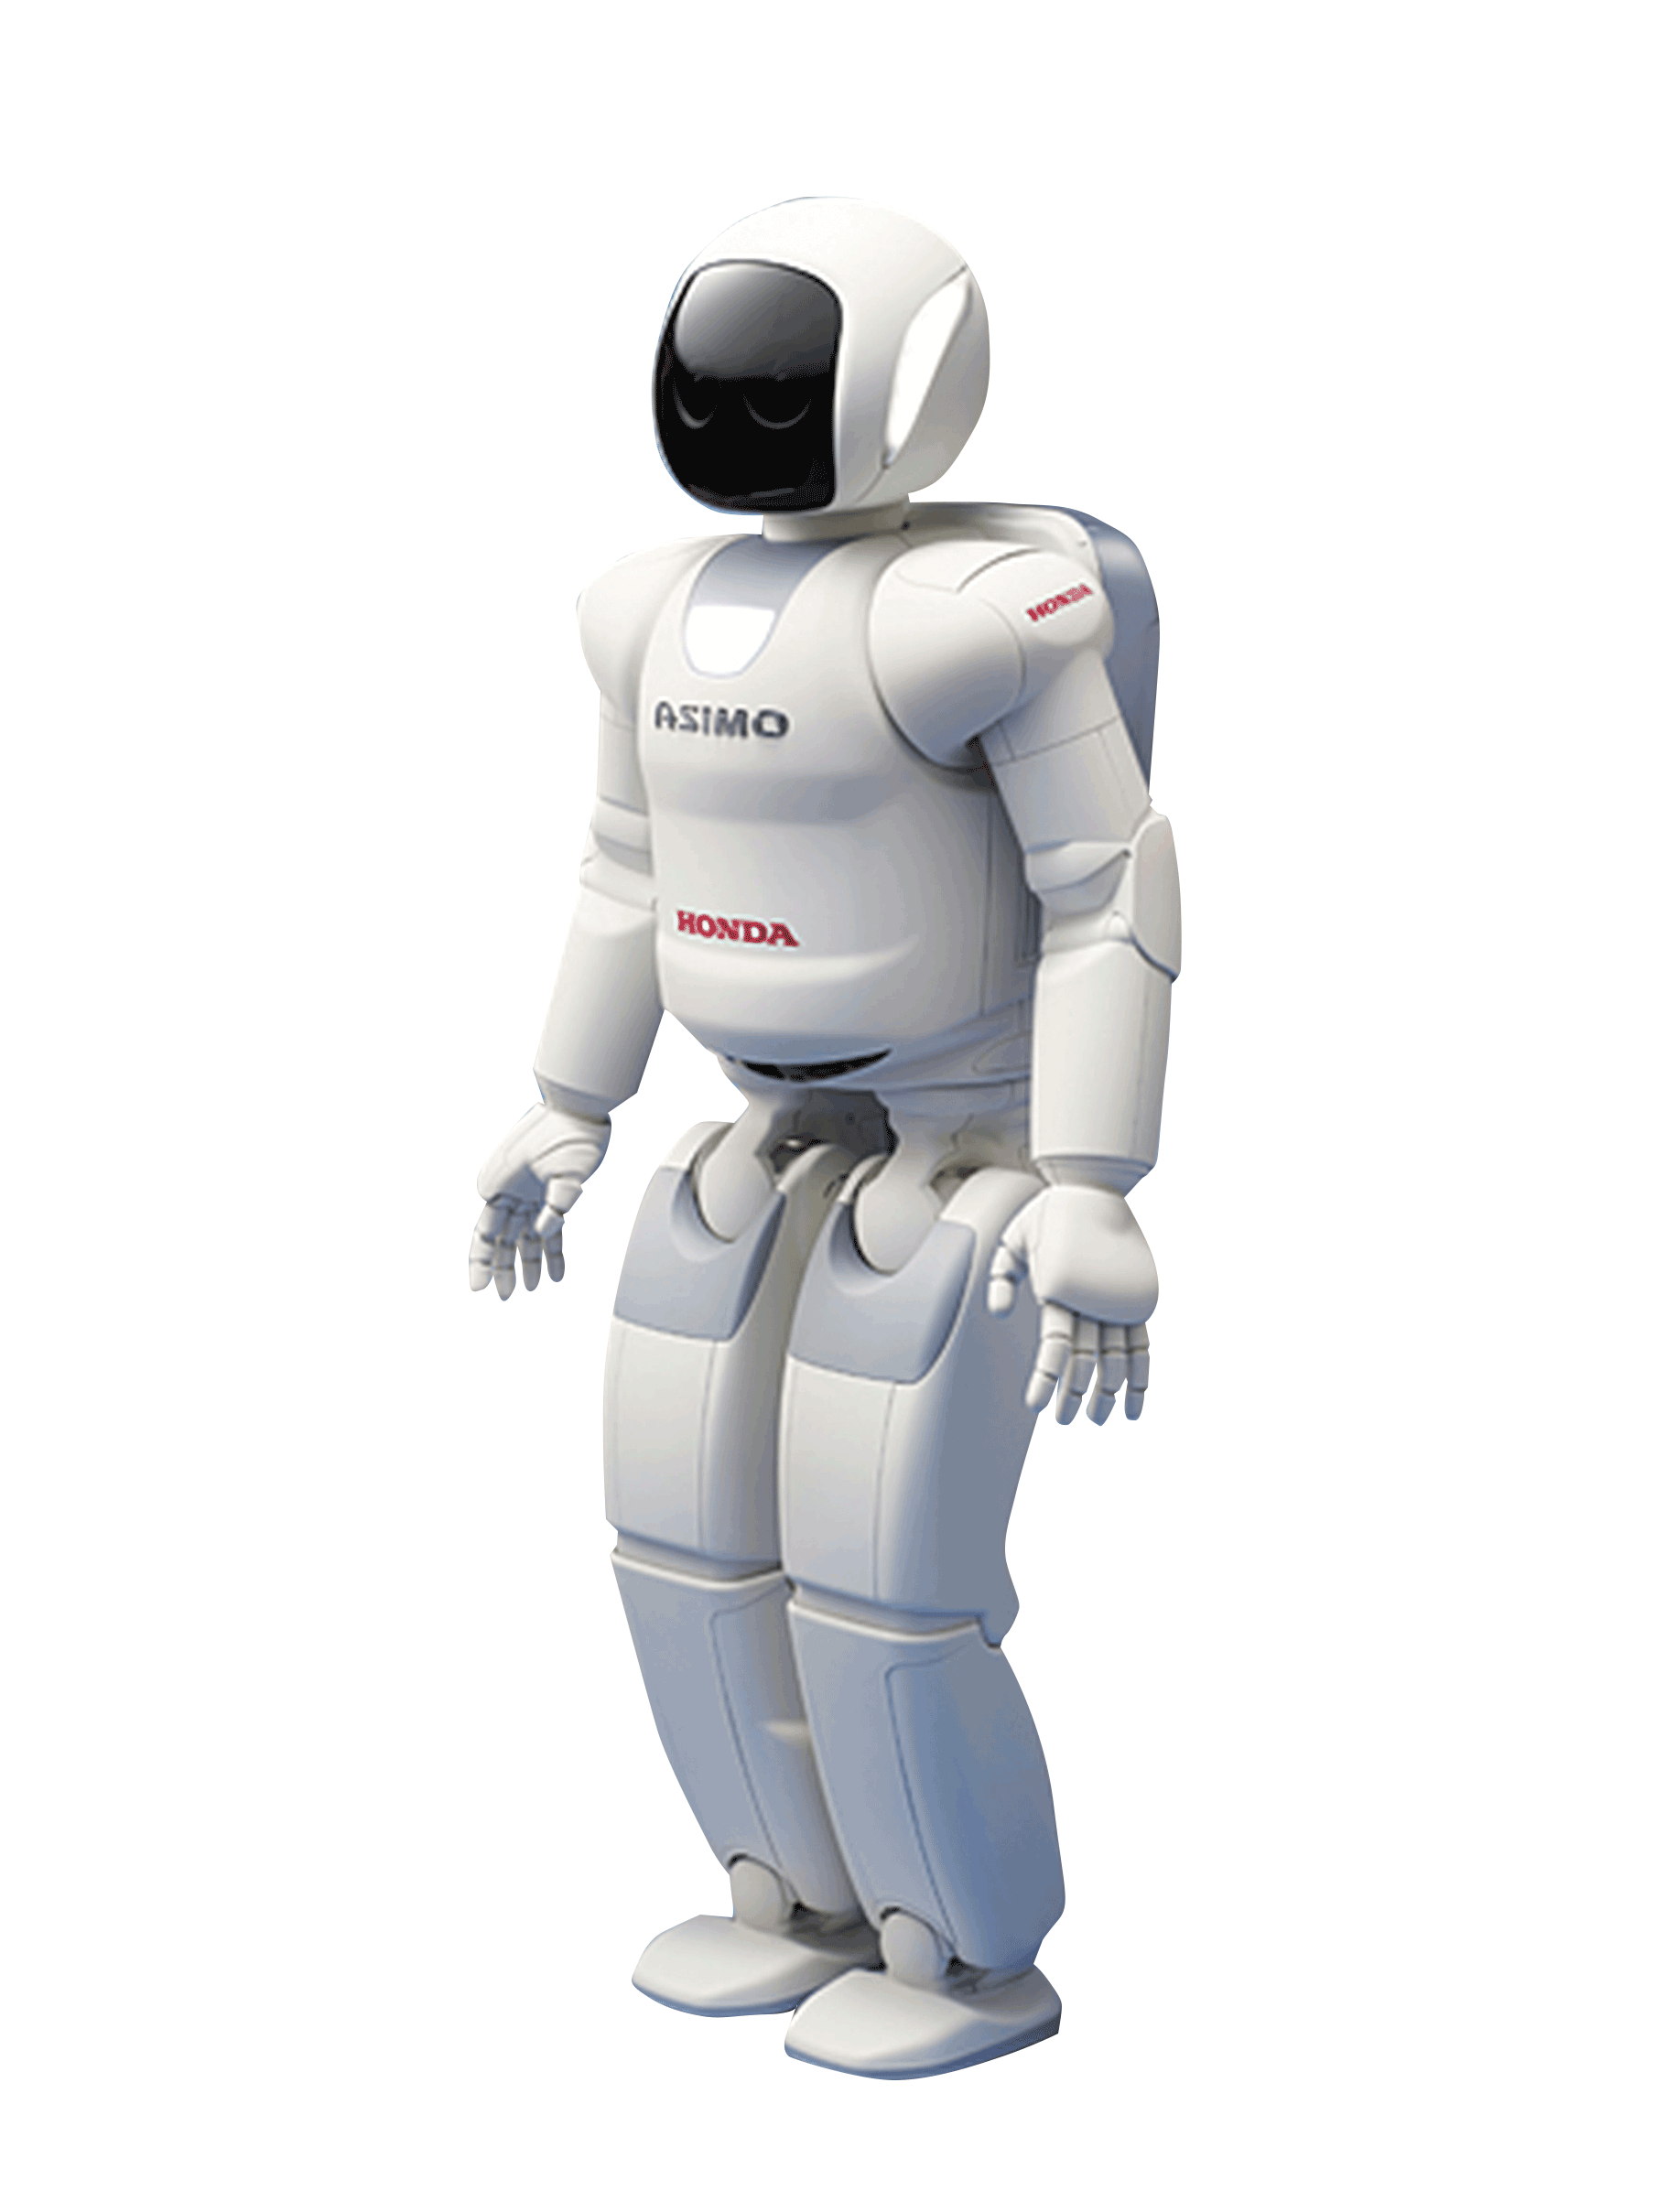 Warrior clipart robot. Asimo transparent png stickpng